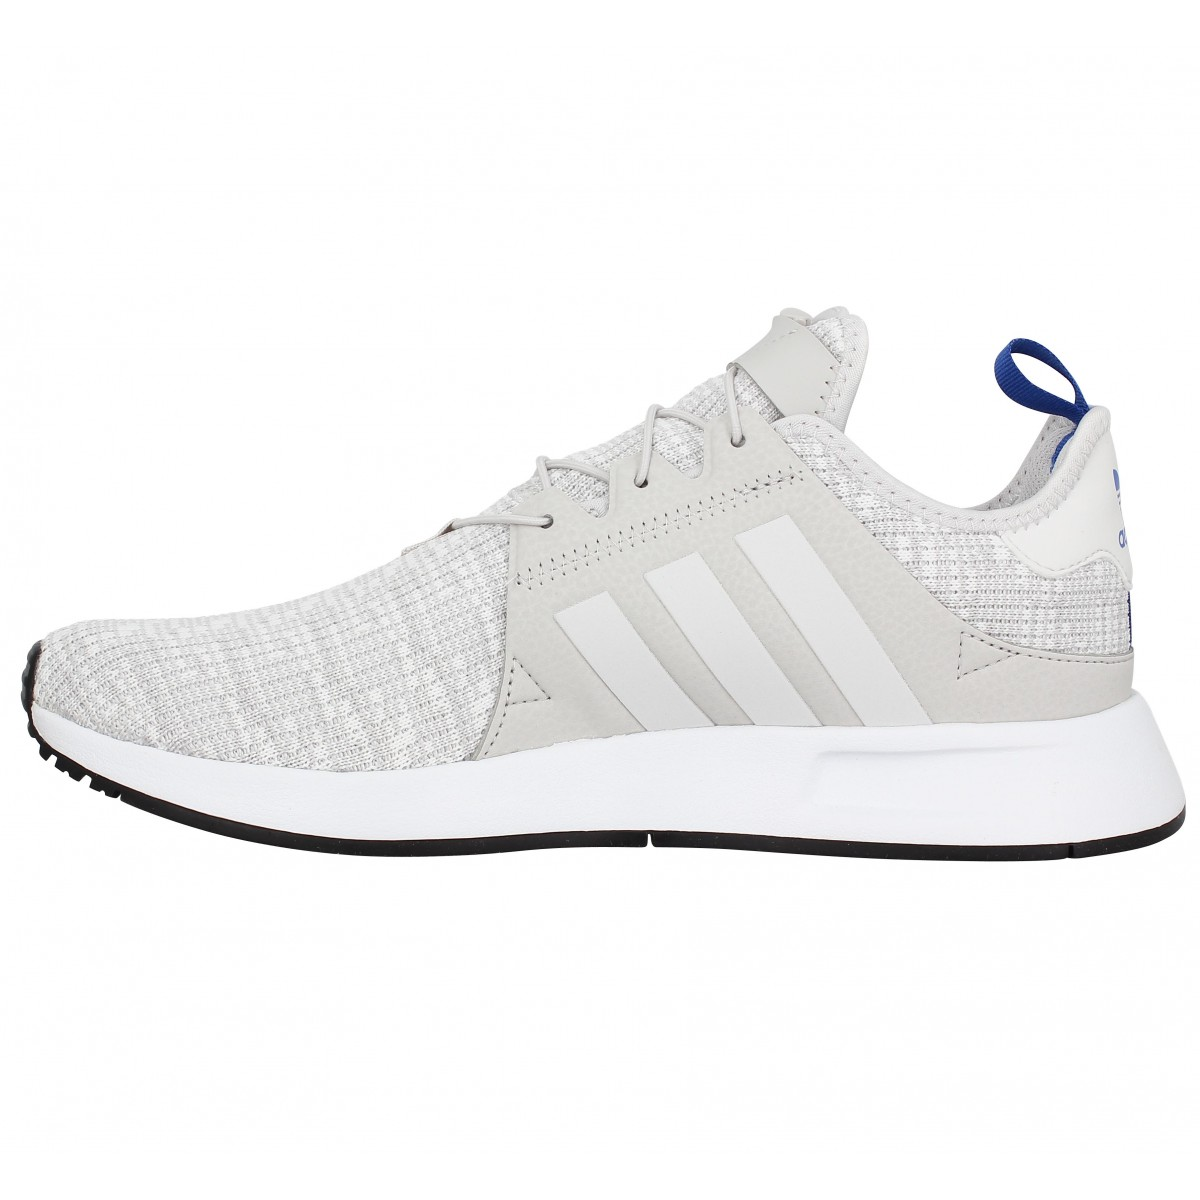 Chaussures Adidas x plr toile homme gris homme | Fanny chaussures